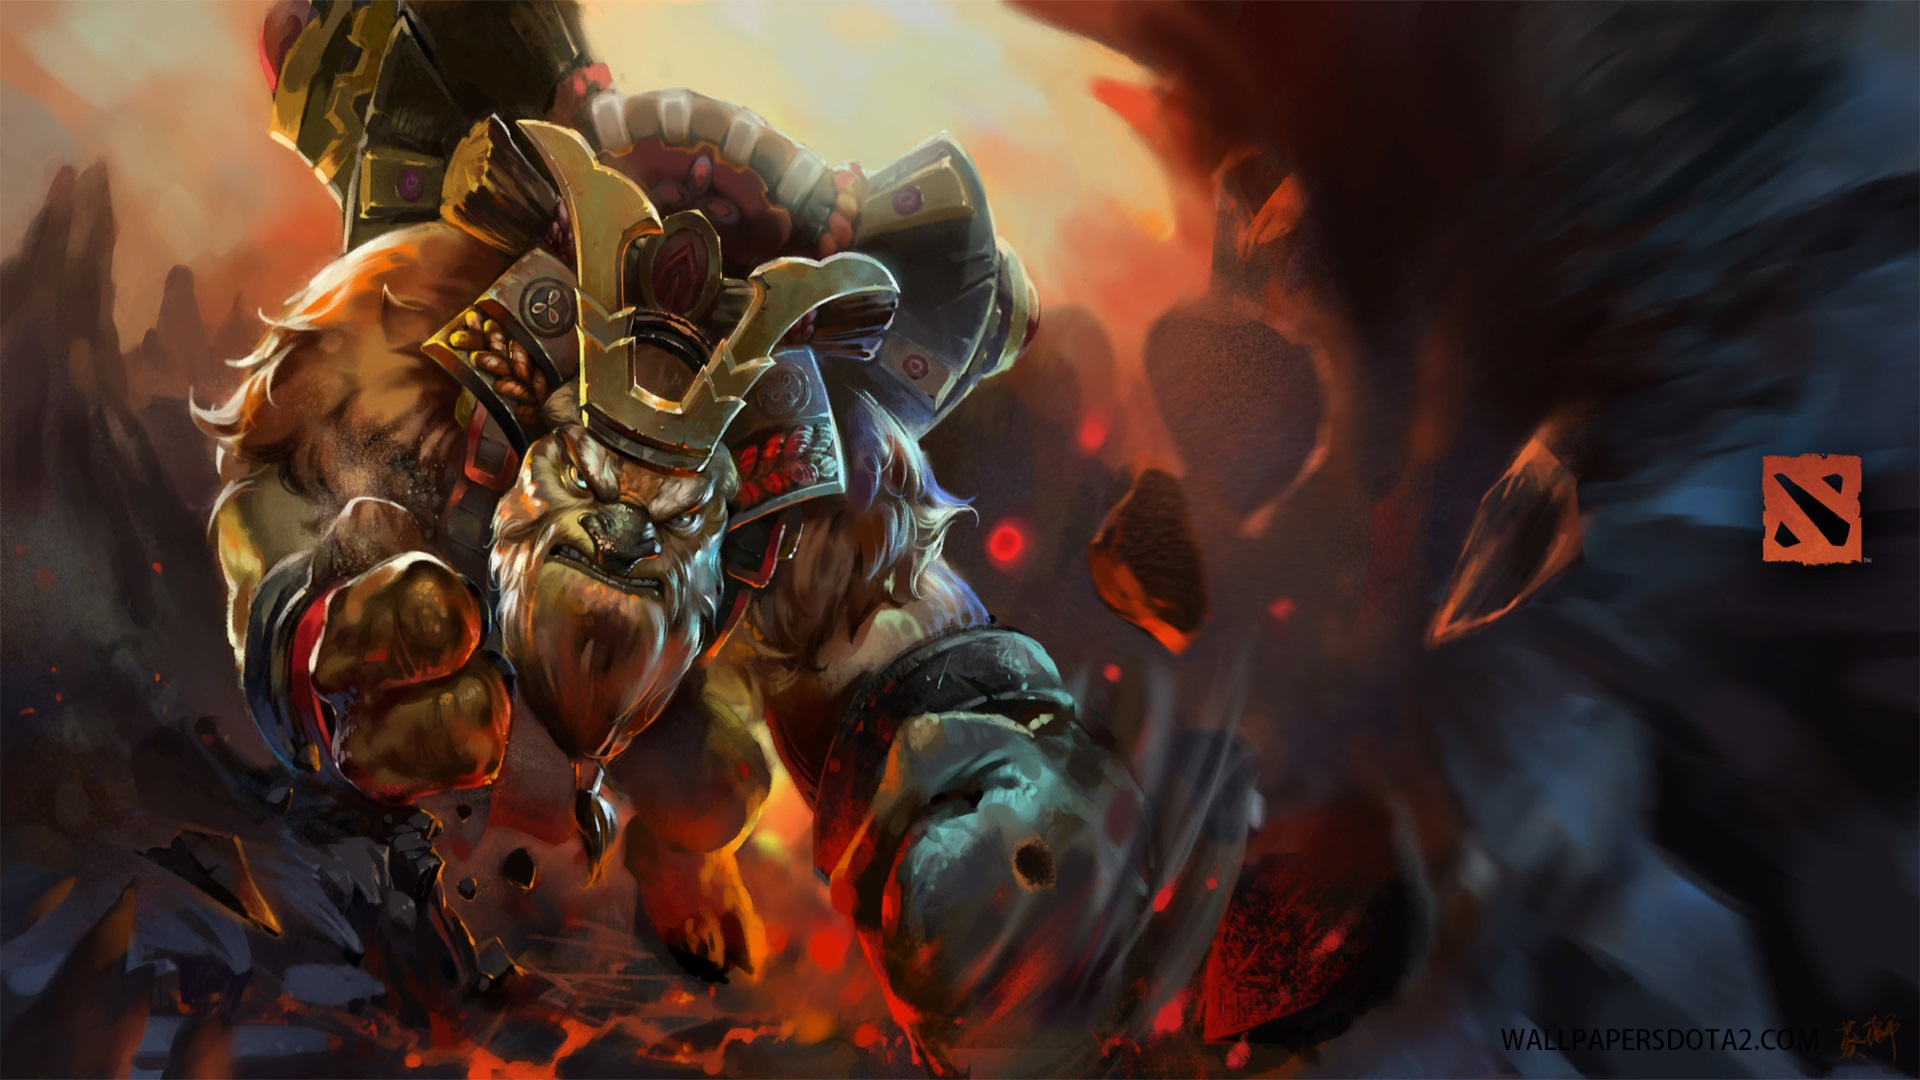 Earthshaker Samurai Soul Dota 2 high resolution desktop backgrounds